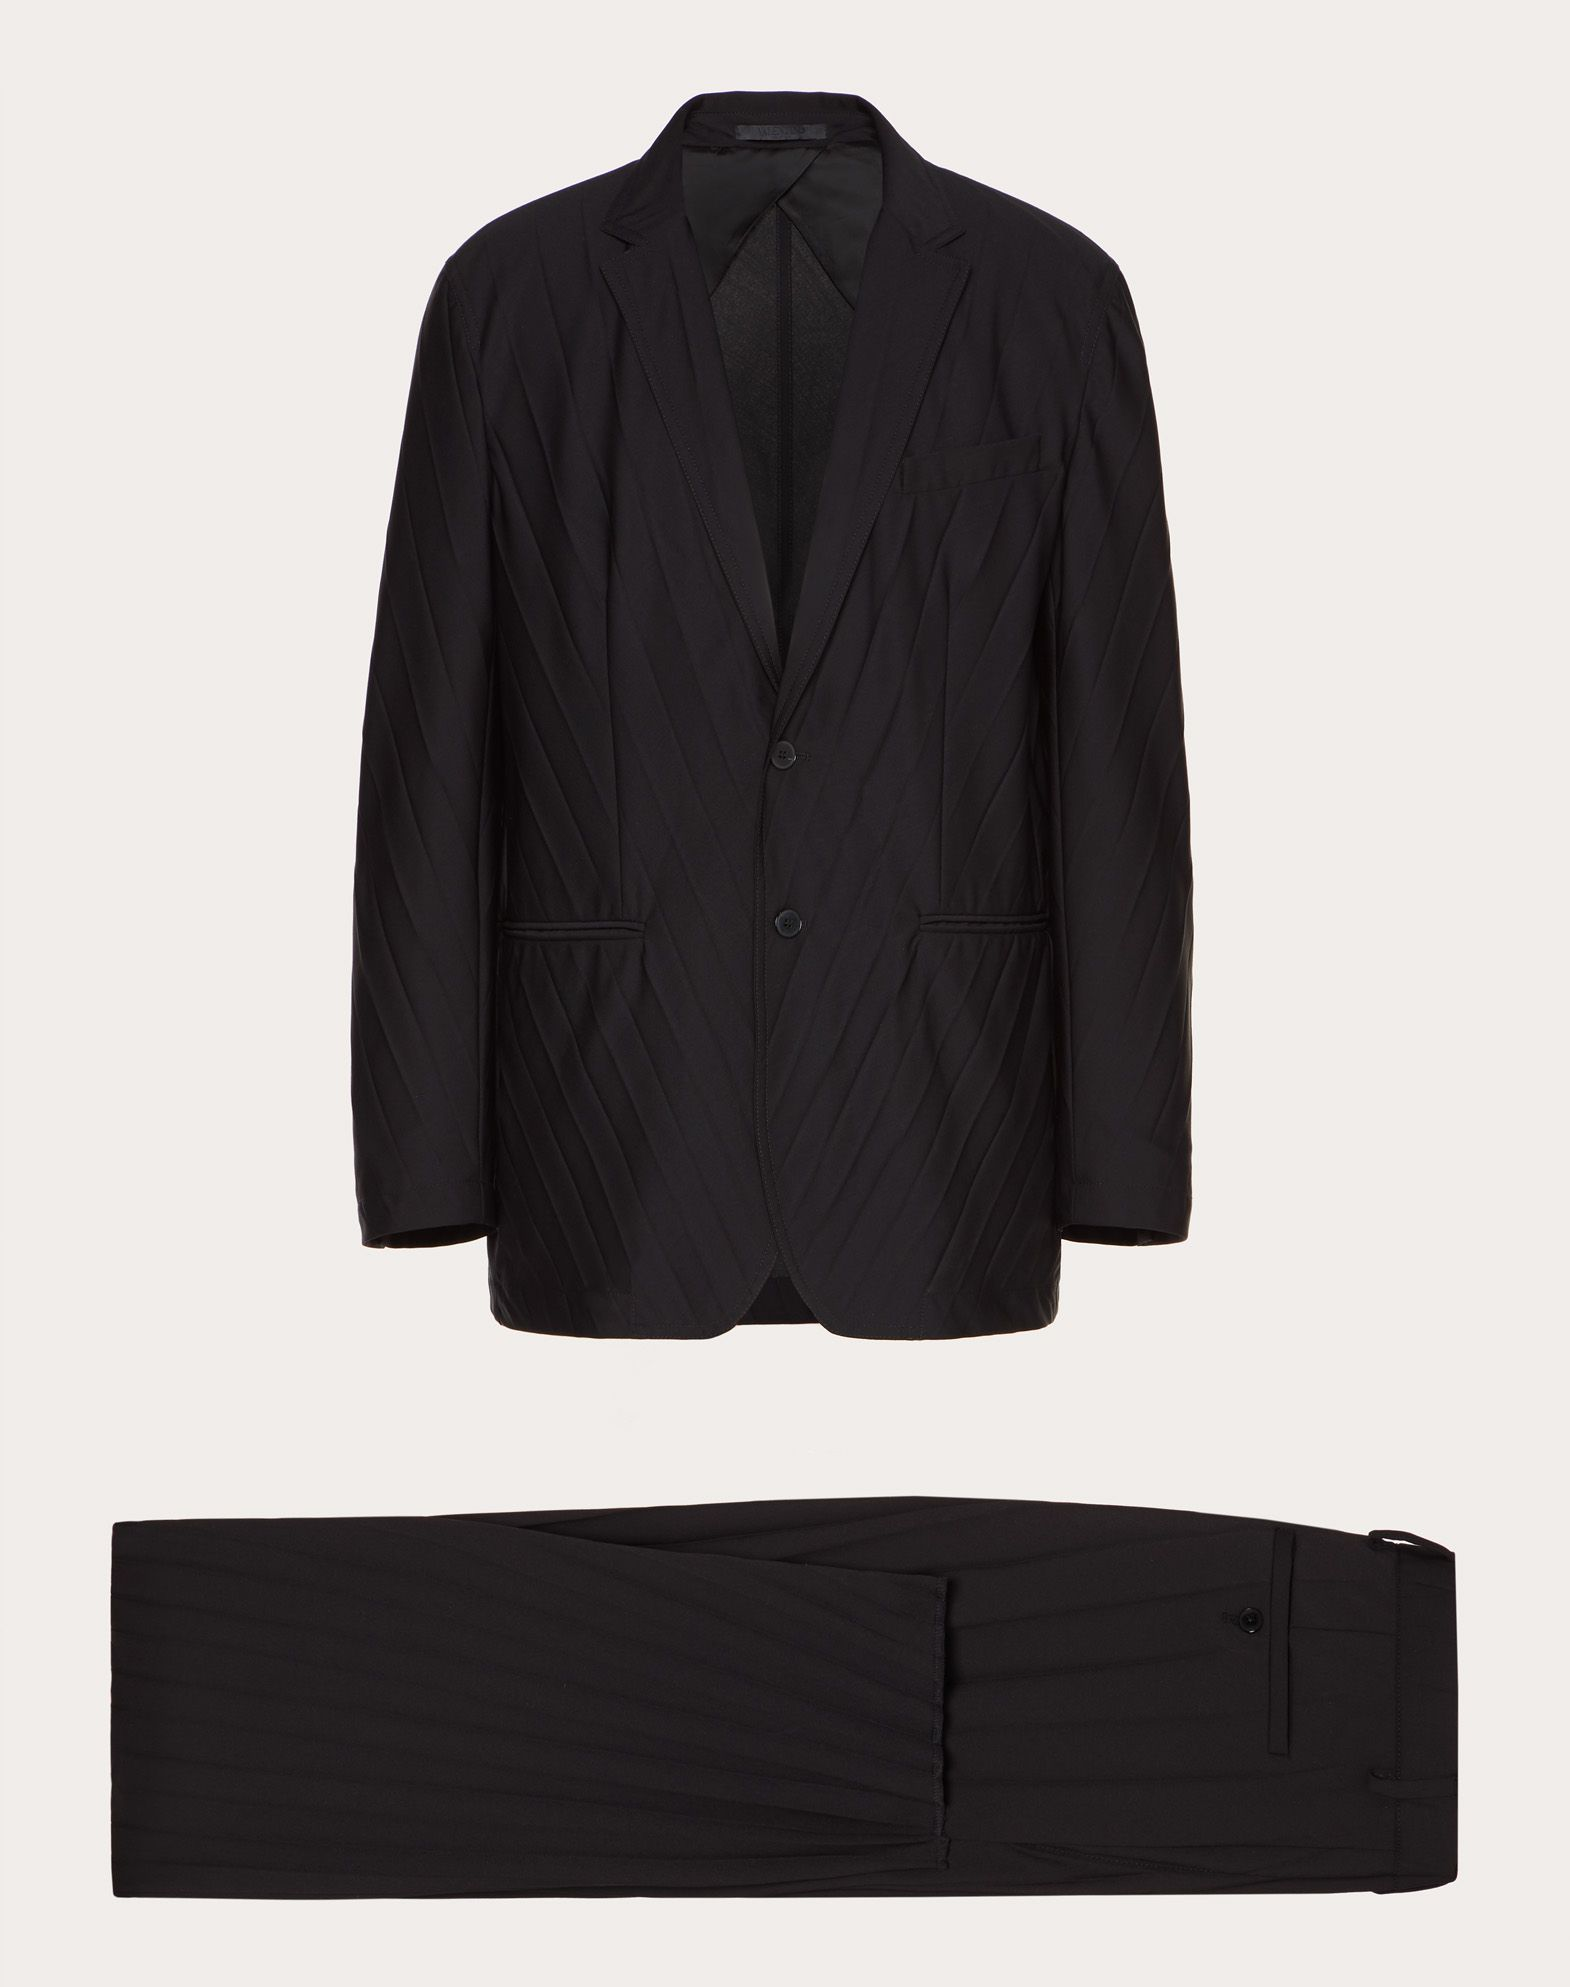 OVERSIZE 2 BUTTON UNLINED PLEATED SUIT